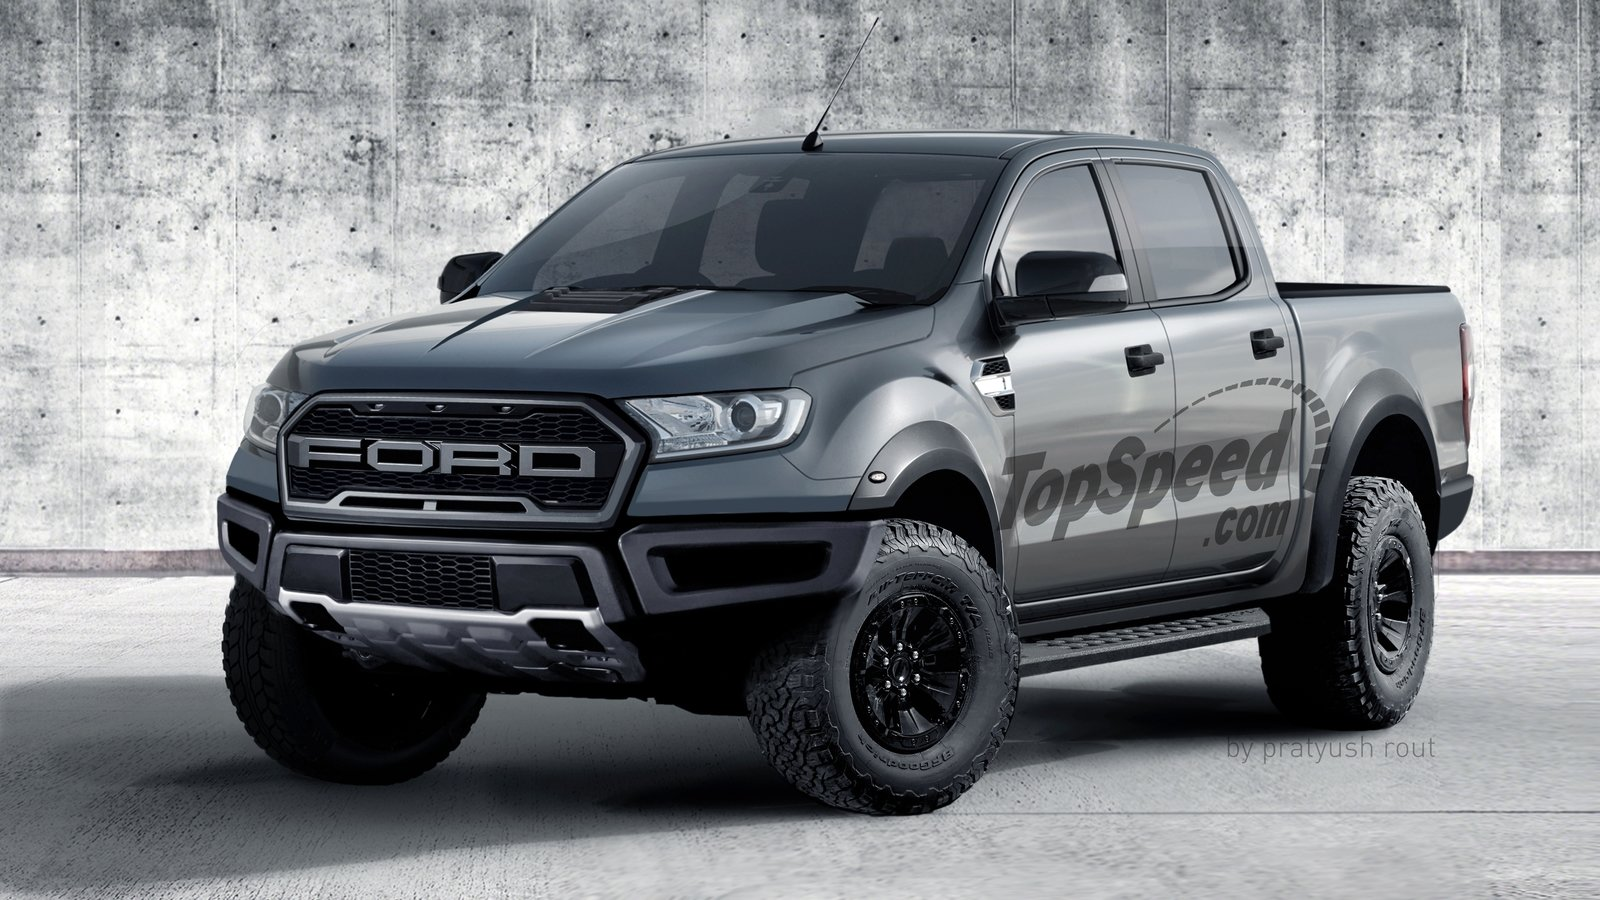 2019 ford ranger price release date specs interior. Black Bedroom Furniture Sets. Home Design Ideas